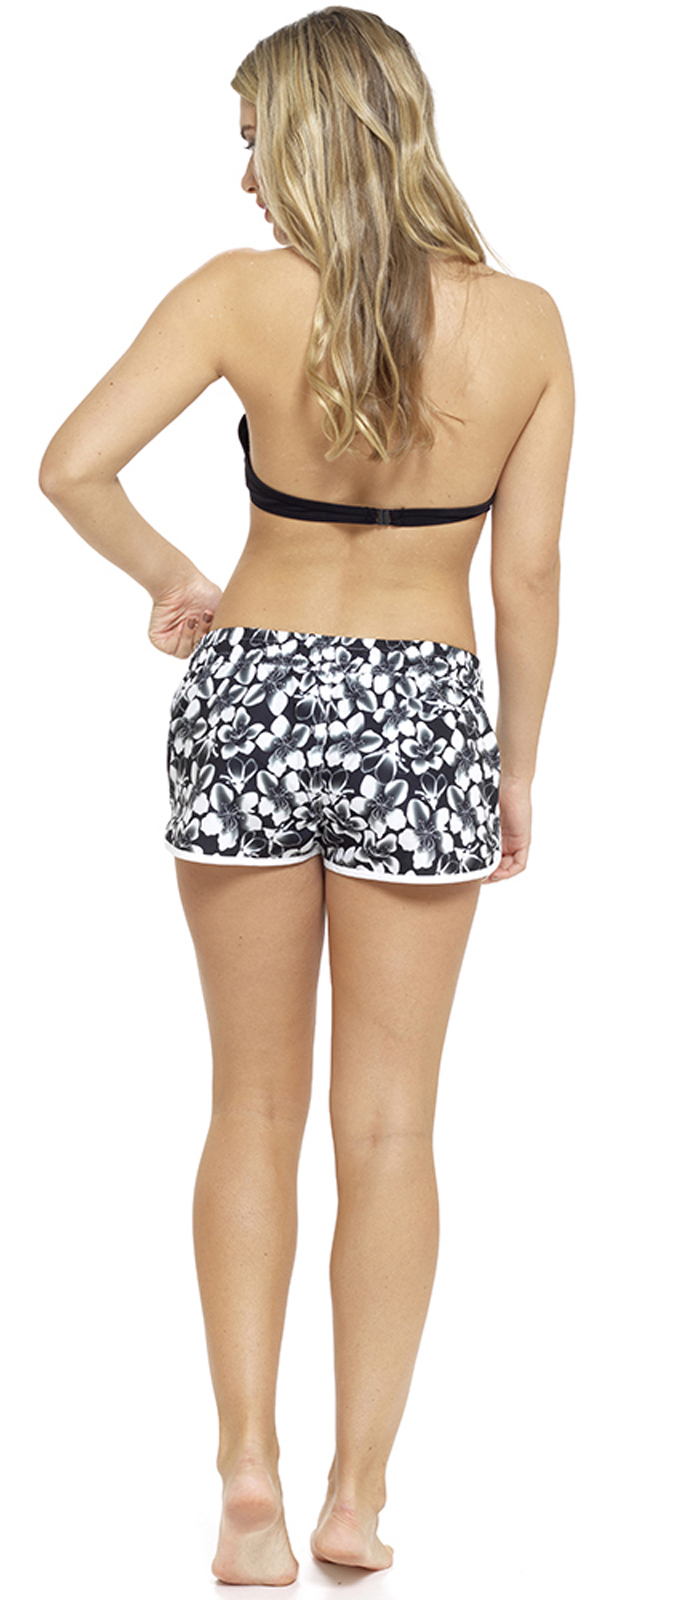 Womens shorts for work & fun: High waisted and fitted shorts, sexy sports shorts, booty shorts, ripped denim, lace trim, and more. 0. Item was added to your bag! View Bag. Checkout. Continue Shopping. My Bag 0. Item was added to your bag! Sale Swim .